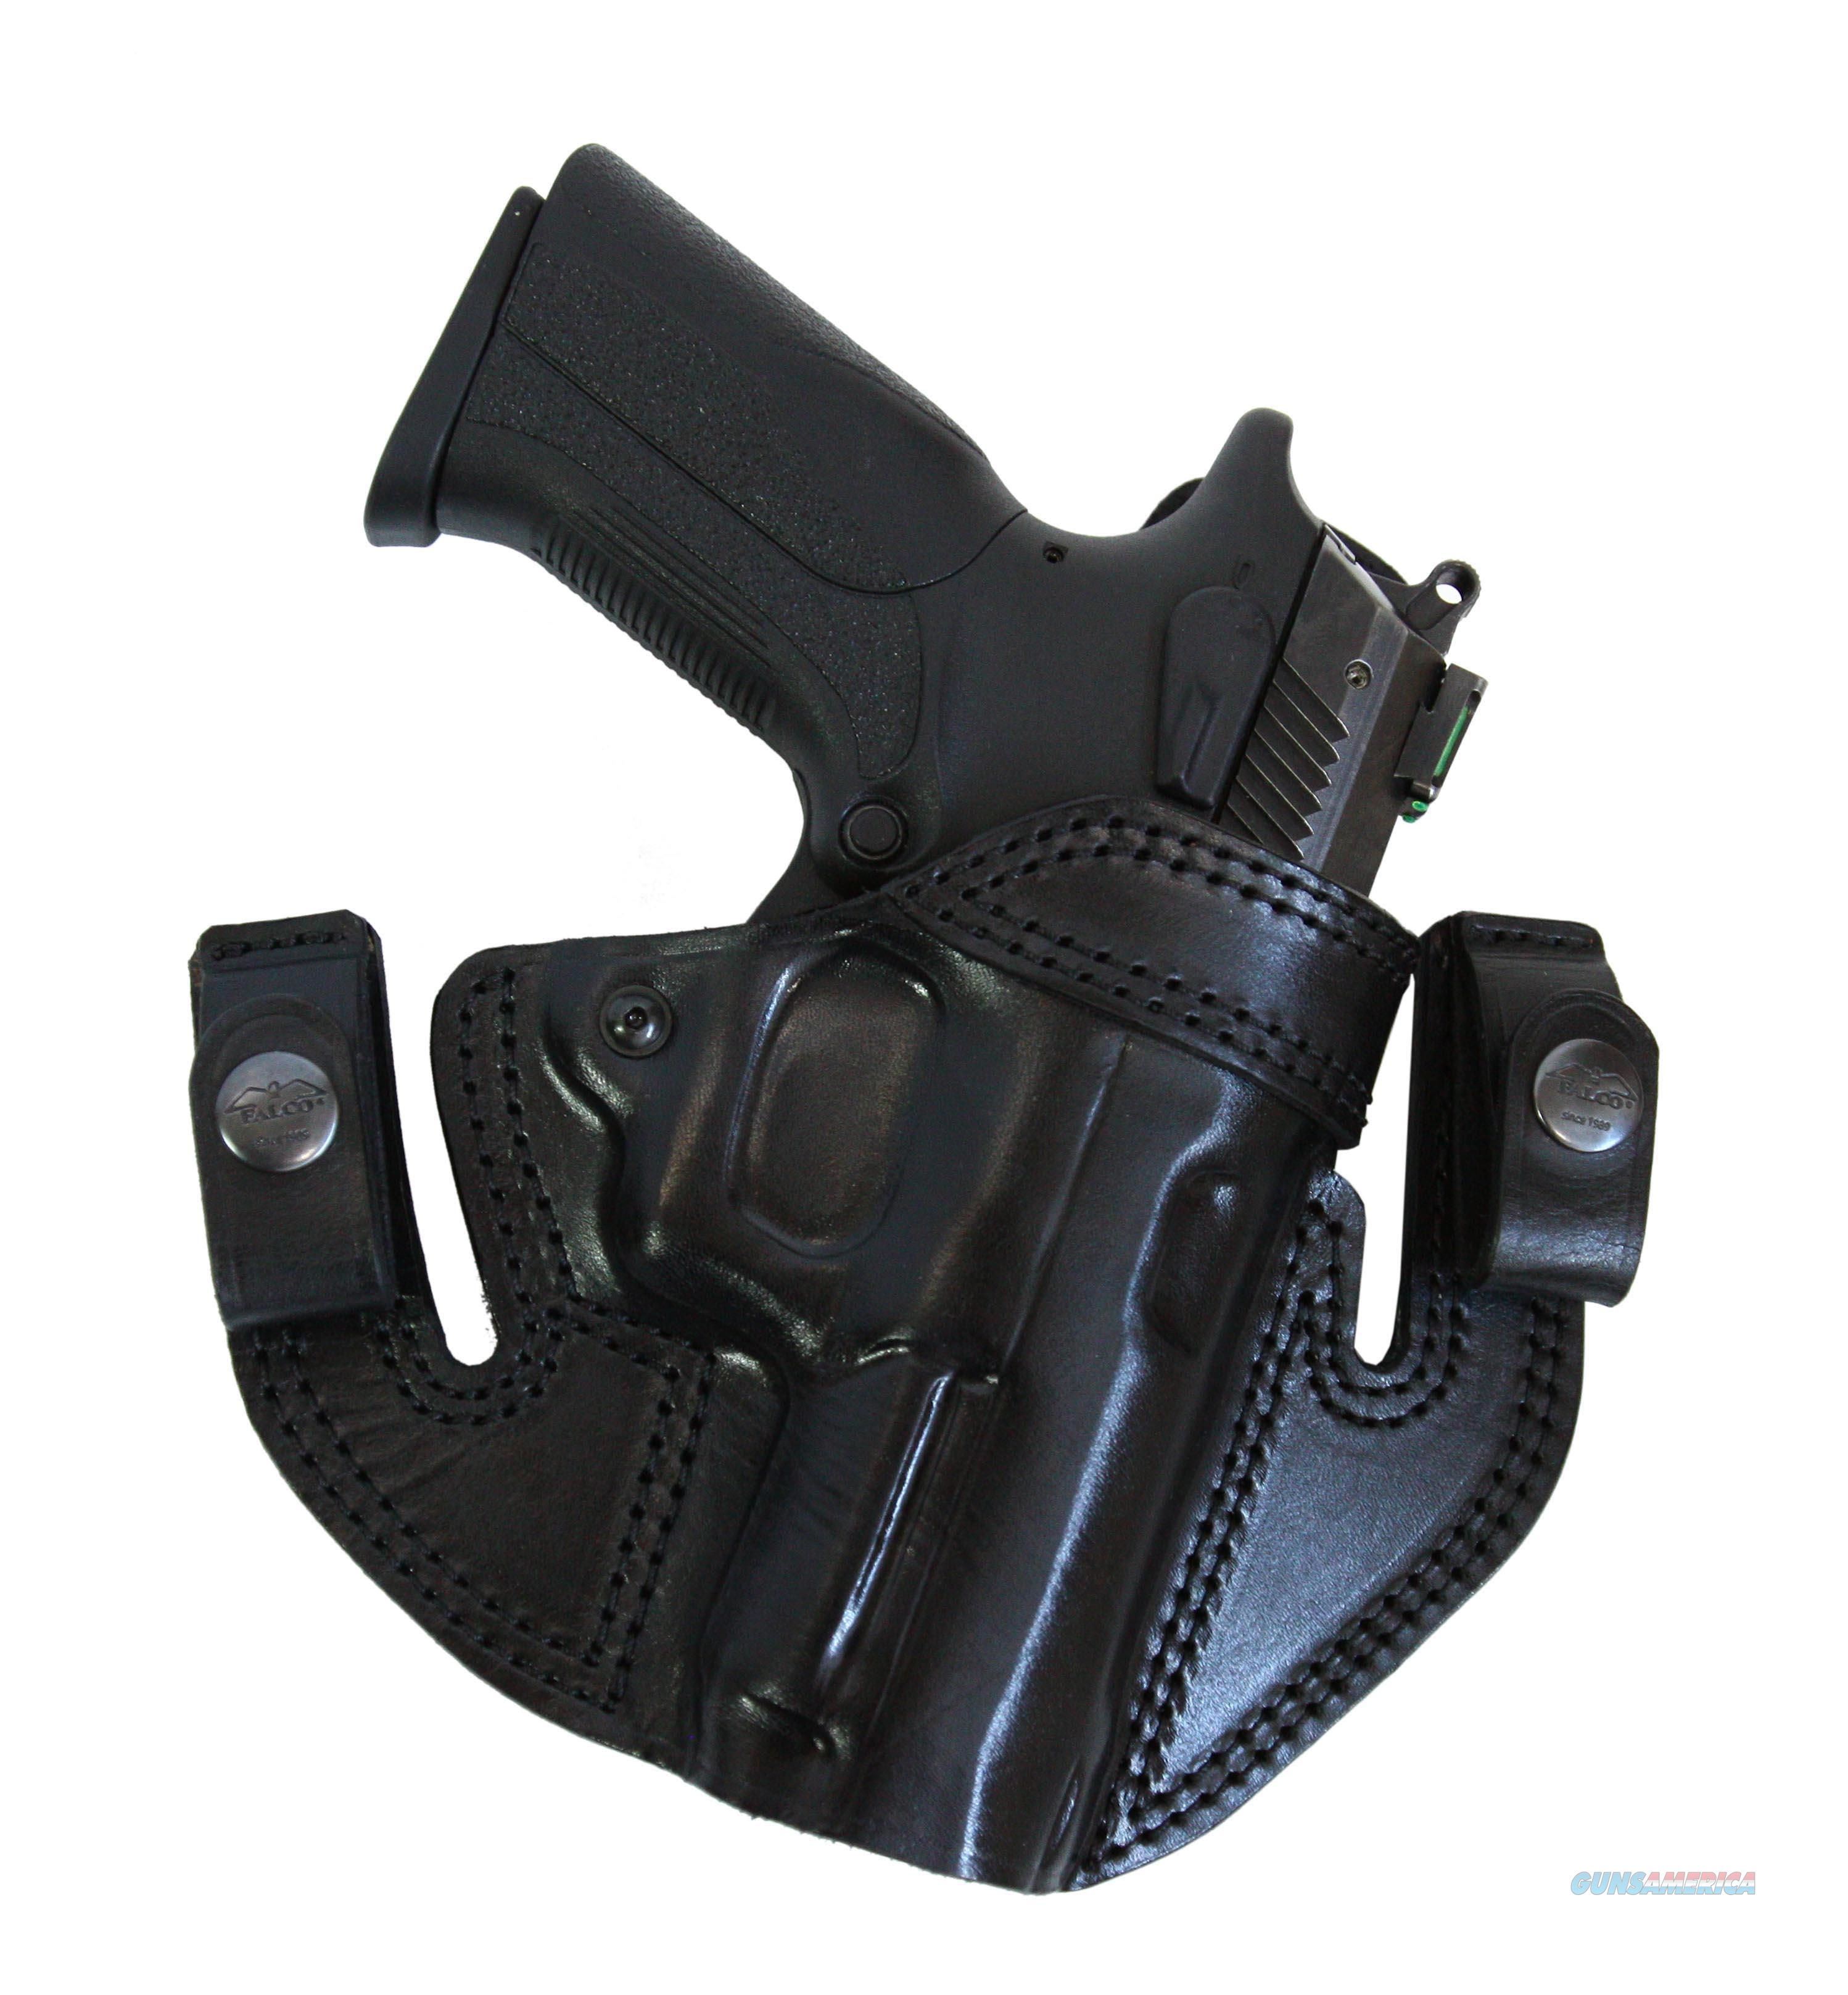 IWB / OWB Leather Gun Holster  Beretta 92FS  Non-Guns > Holsters and Gunleather > Concealed Carry